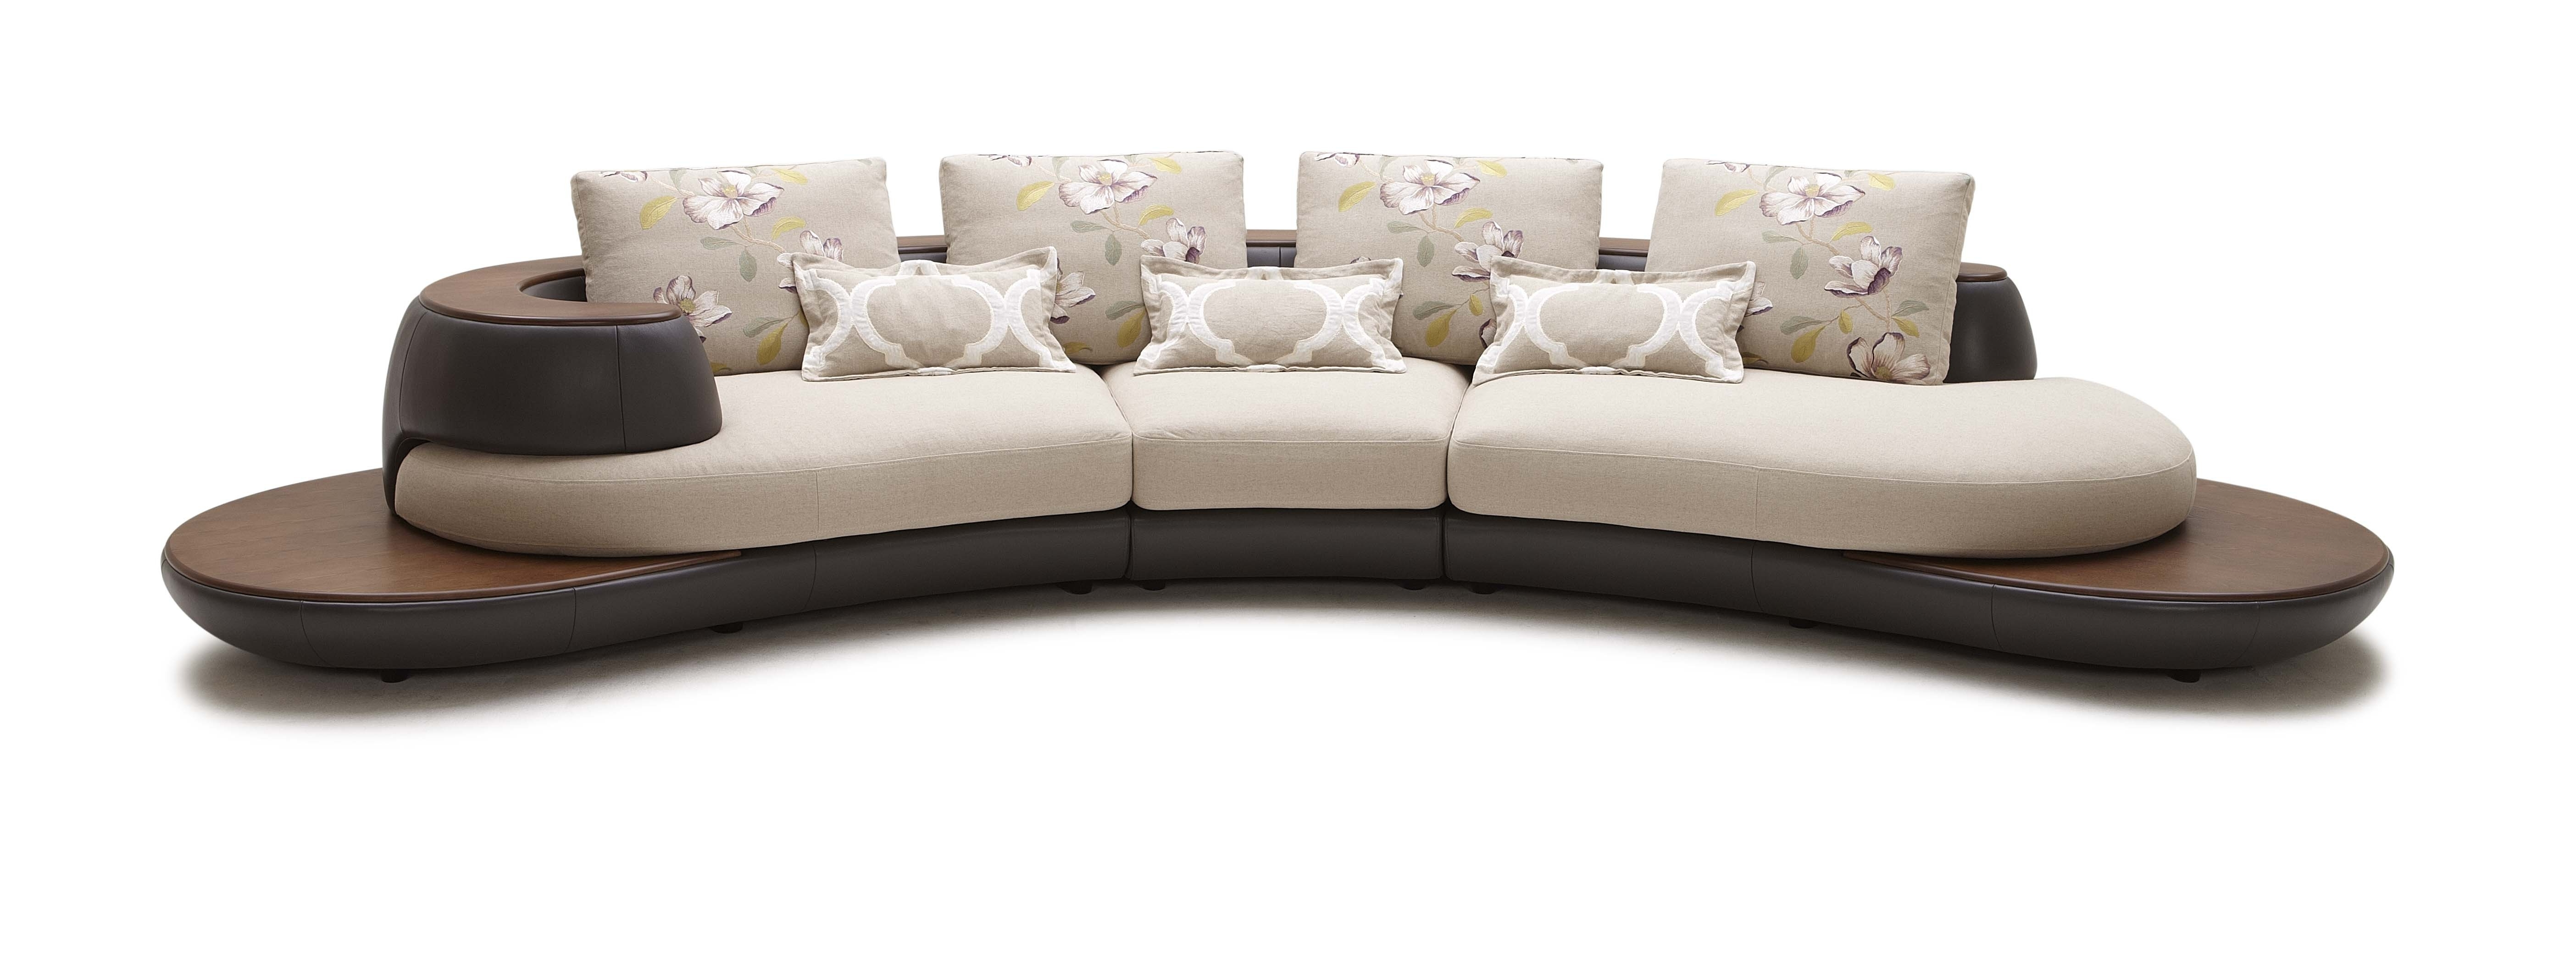 Most Up To Date Modern Unusual Sofa Design Superb Living Room Furniture Best Type Inside Unusual Sofa (View 5 of 20)